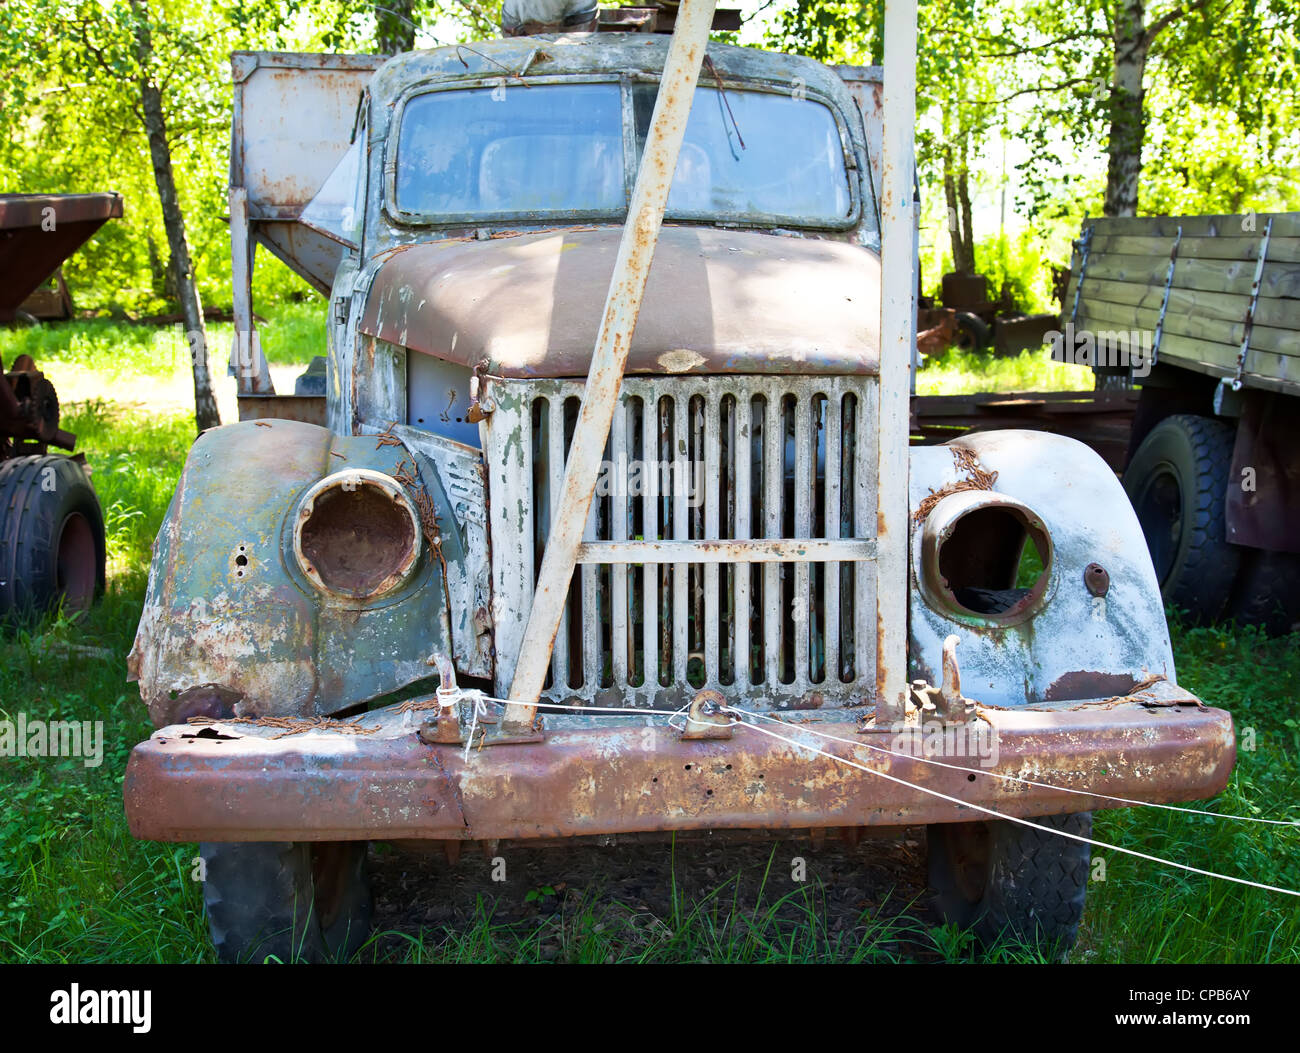 Old obsolete vehicle without lights on green grass - Stock Image